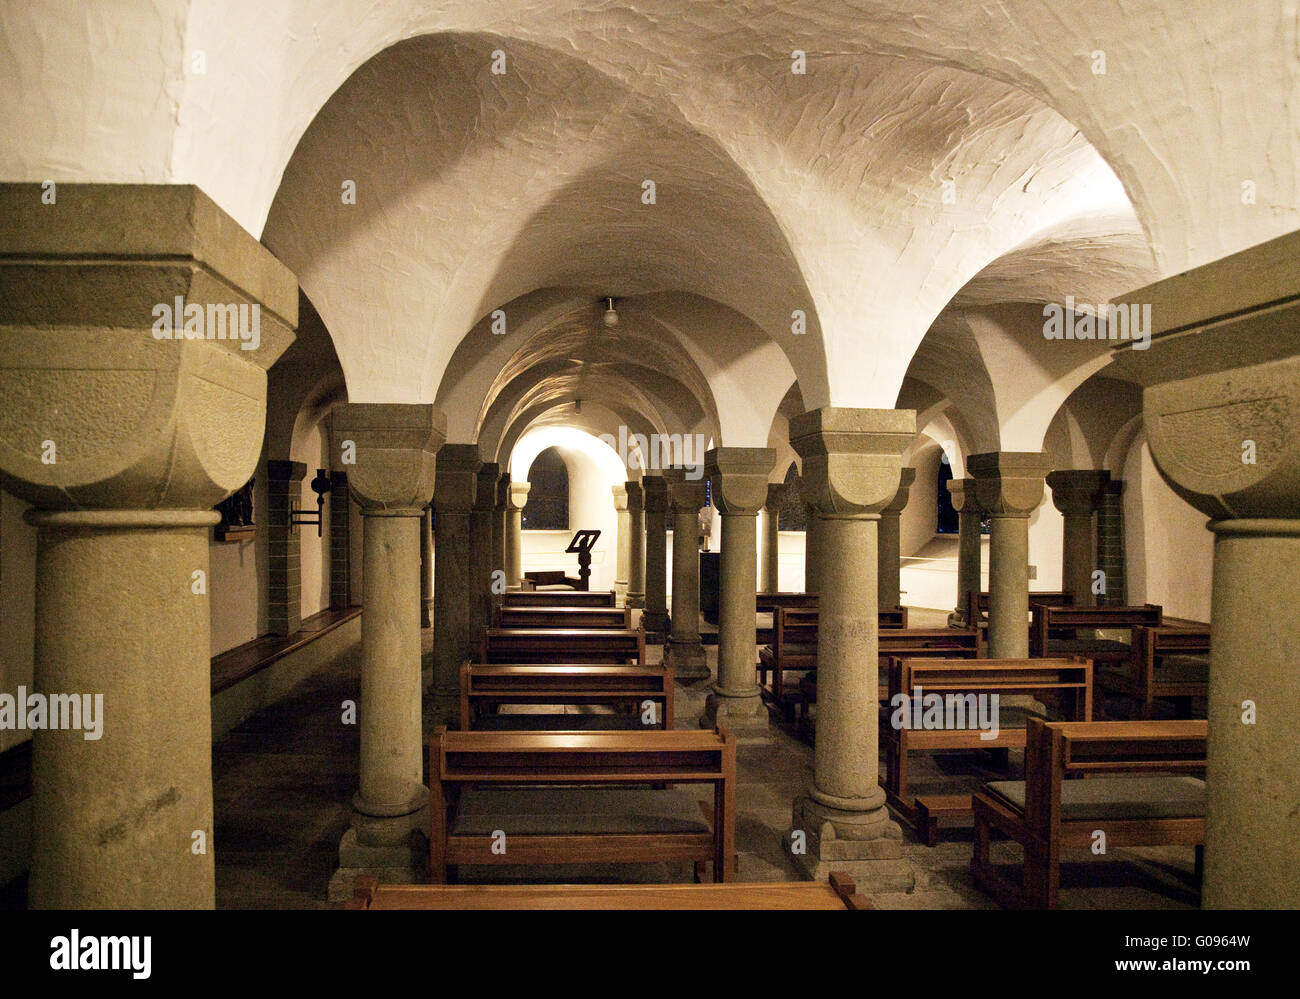 The St. Patrokli Cathedral at Soest in Germany. Stock Photo